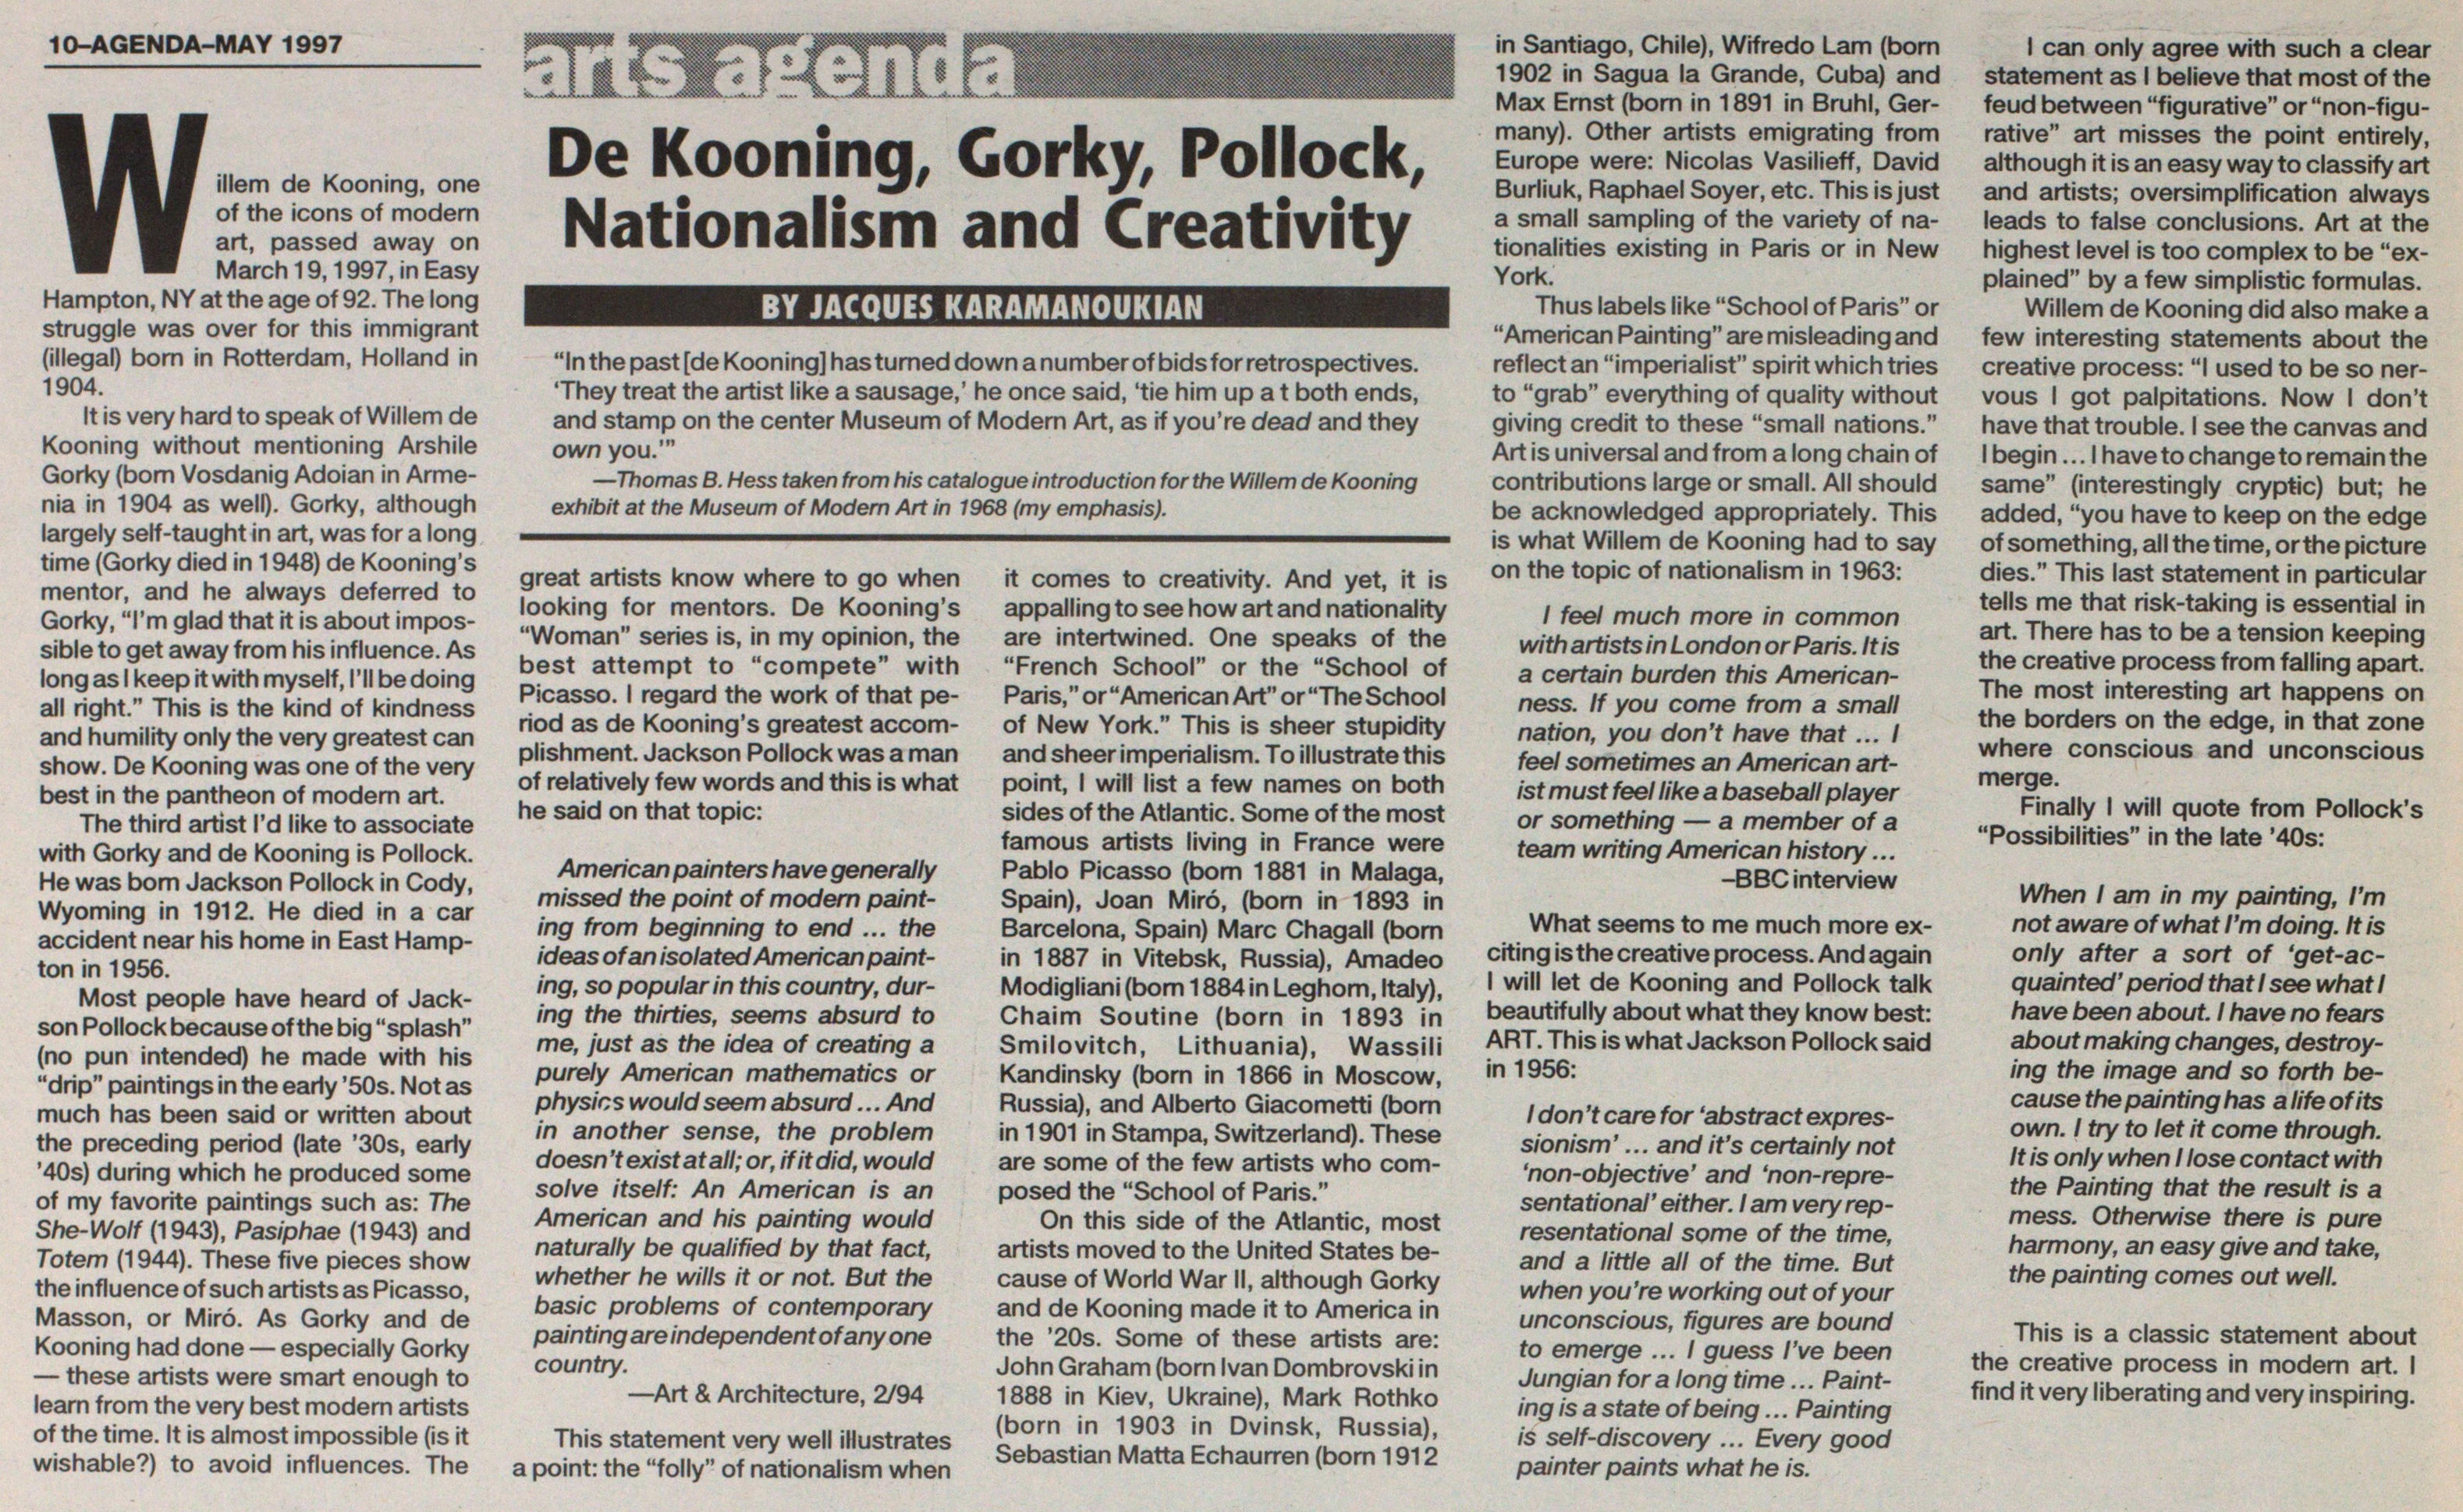 De Kooning, Gorky, Pollock, Nationalism And Creativity image